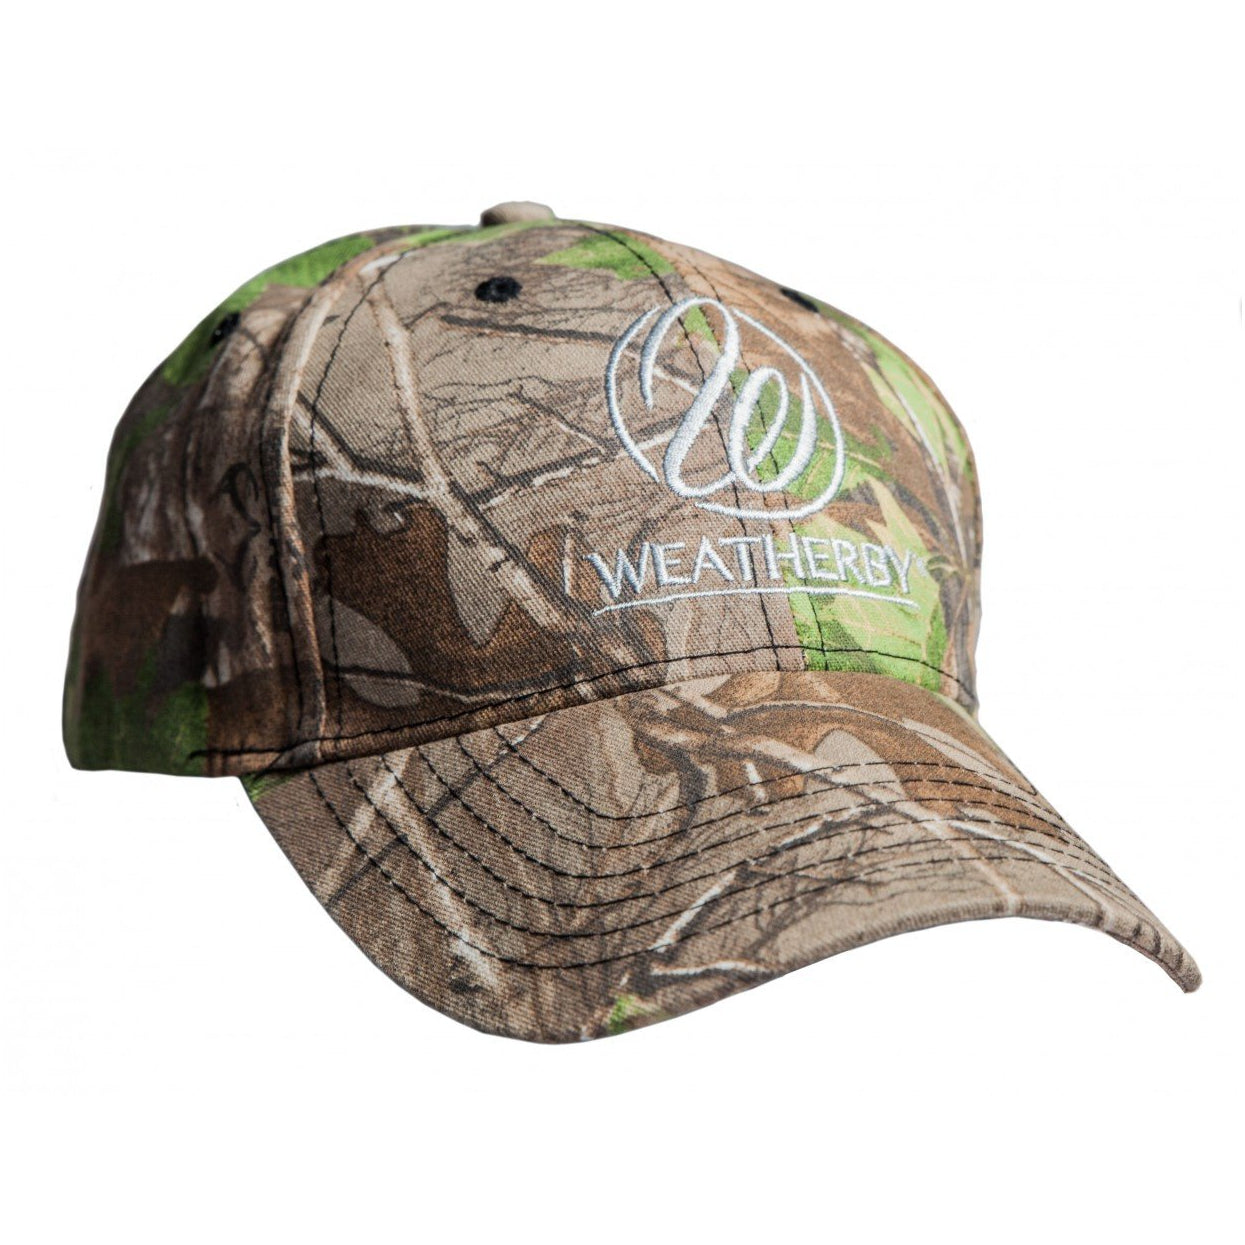 Weatherby Xtra Green Real Tree Cap,Clothing- Canada Brass